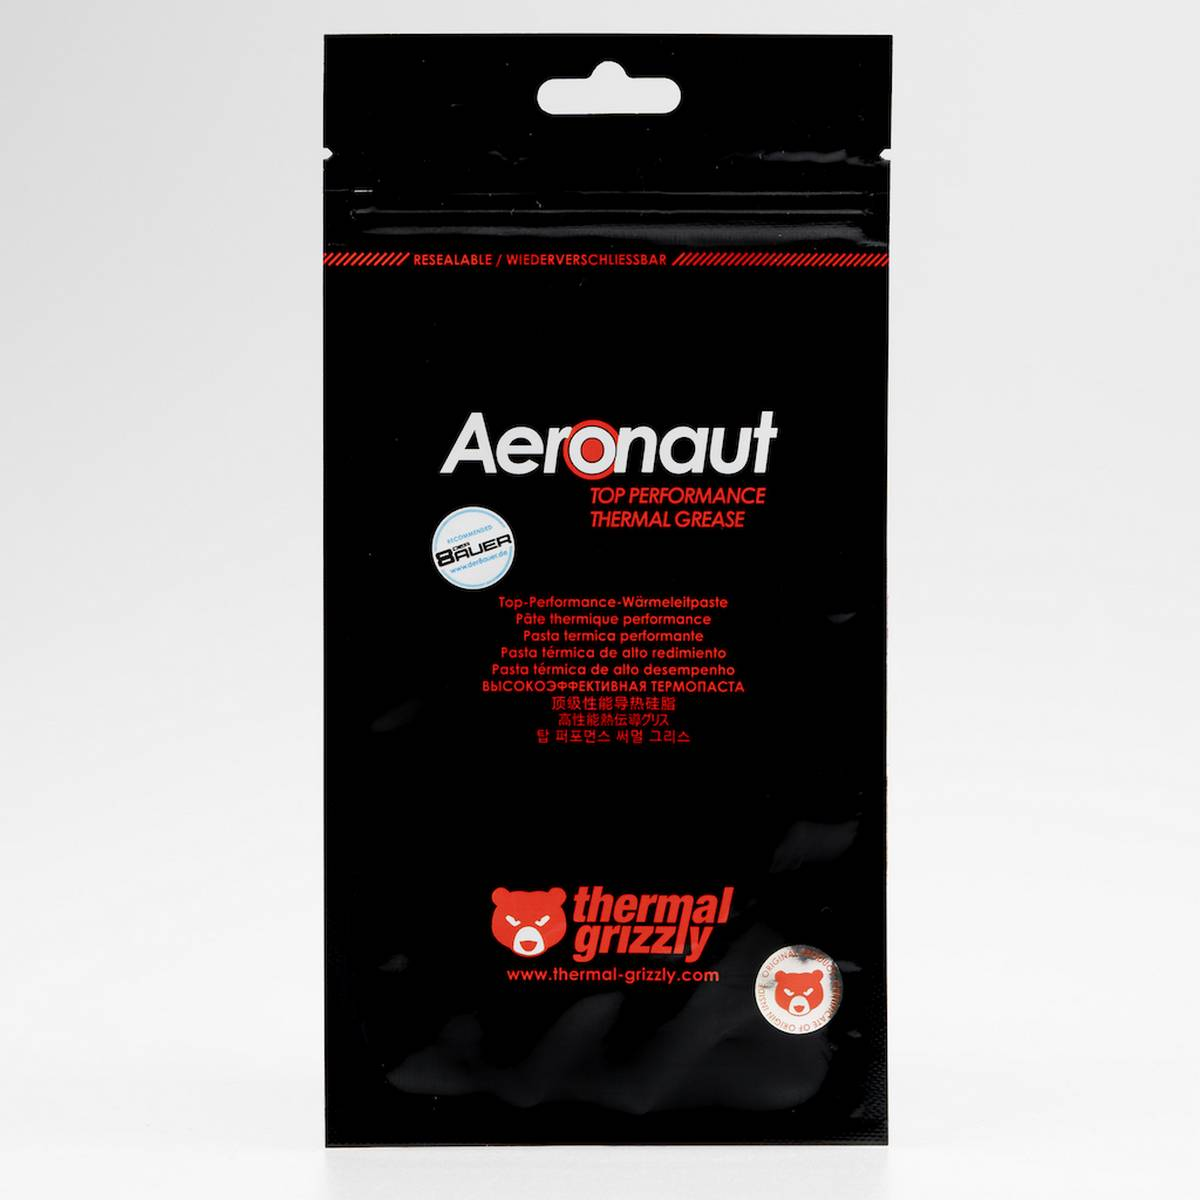 Thermal Grizzly Aeronaut Thermal Grease Paste - 8.5 W/mk 1g Heat Sink Compound